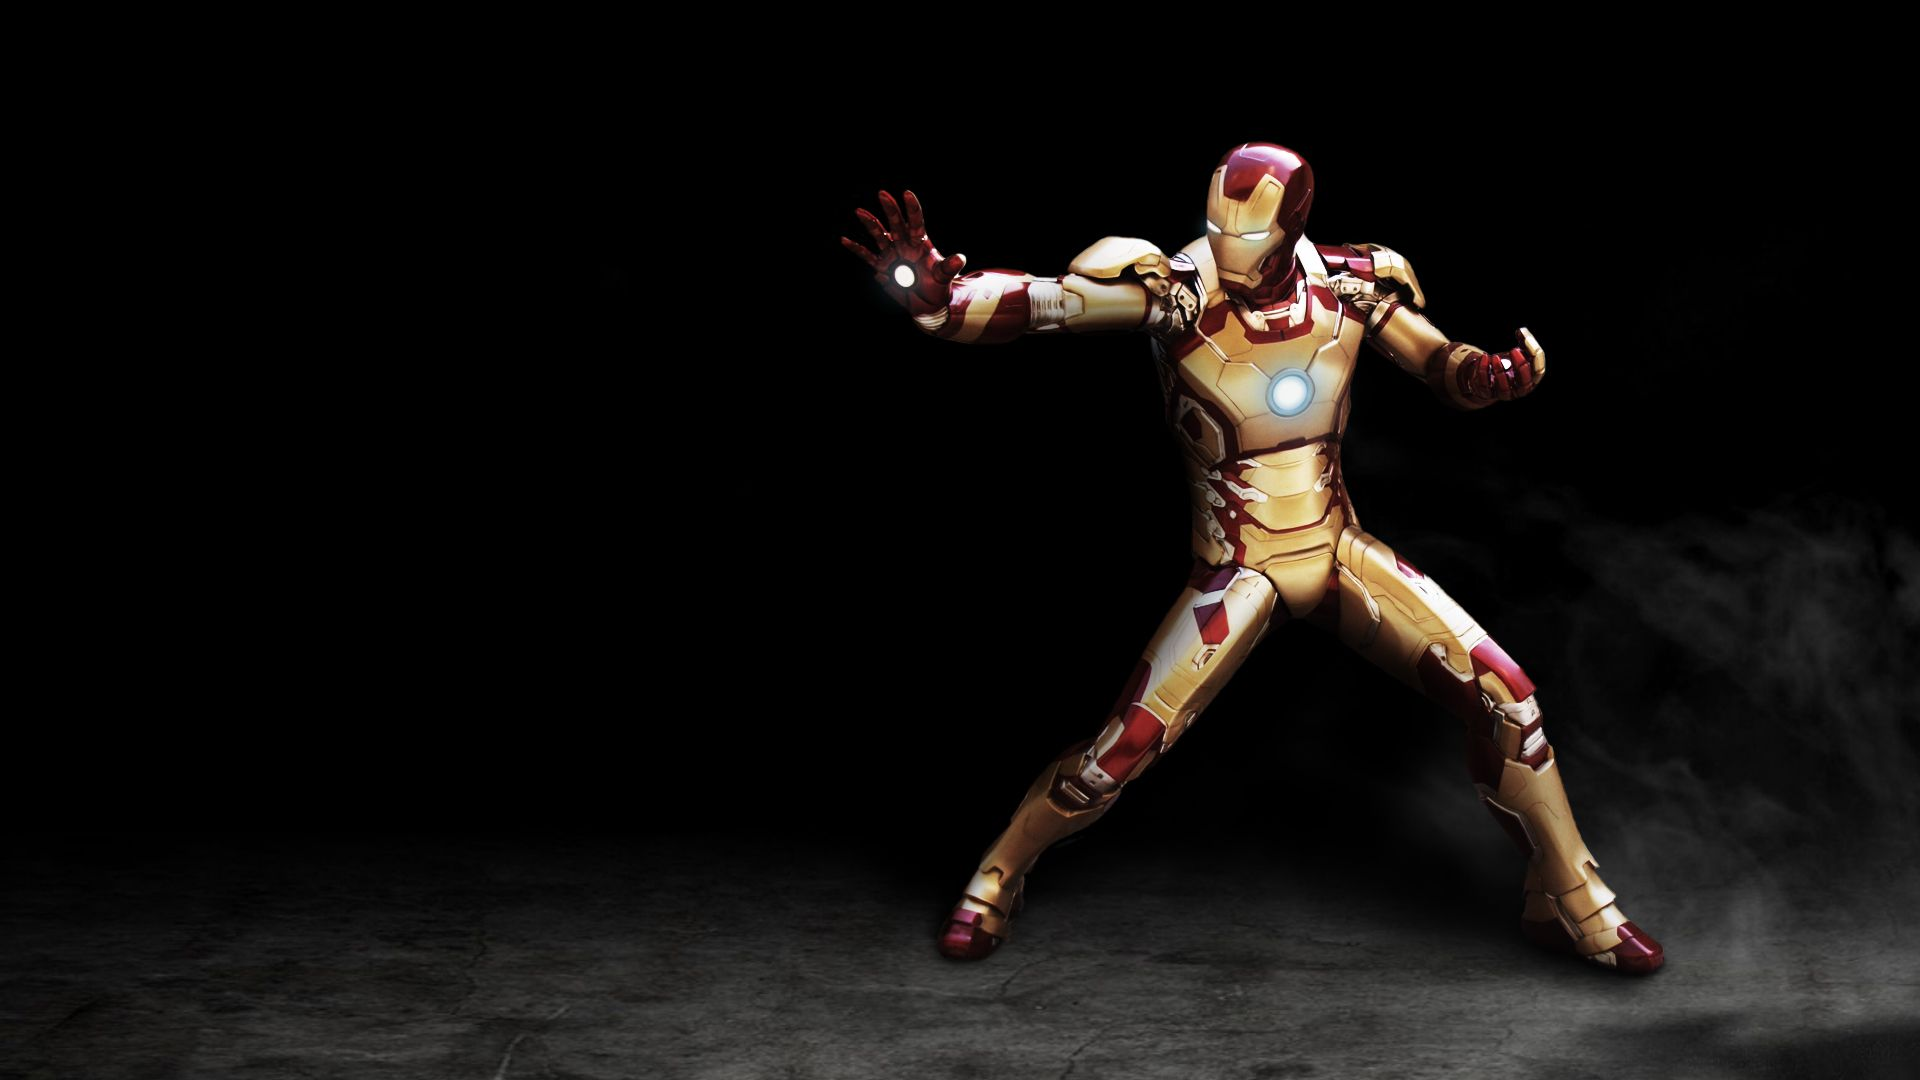 Ironman Wallpaper Hd Hd Desktop Wallpapers 4k Hd Iron Man